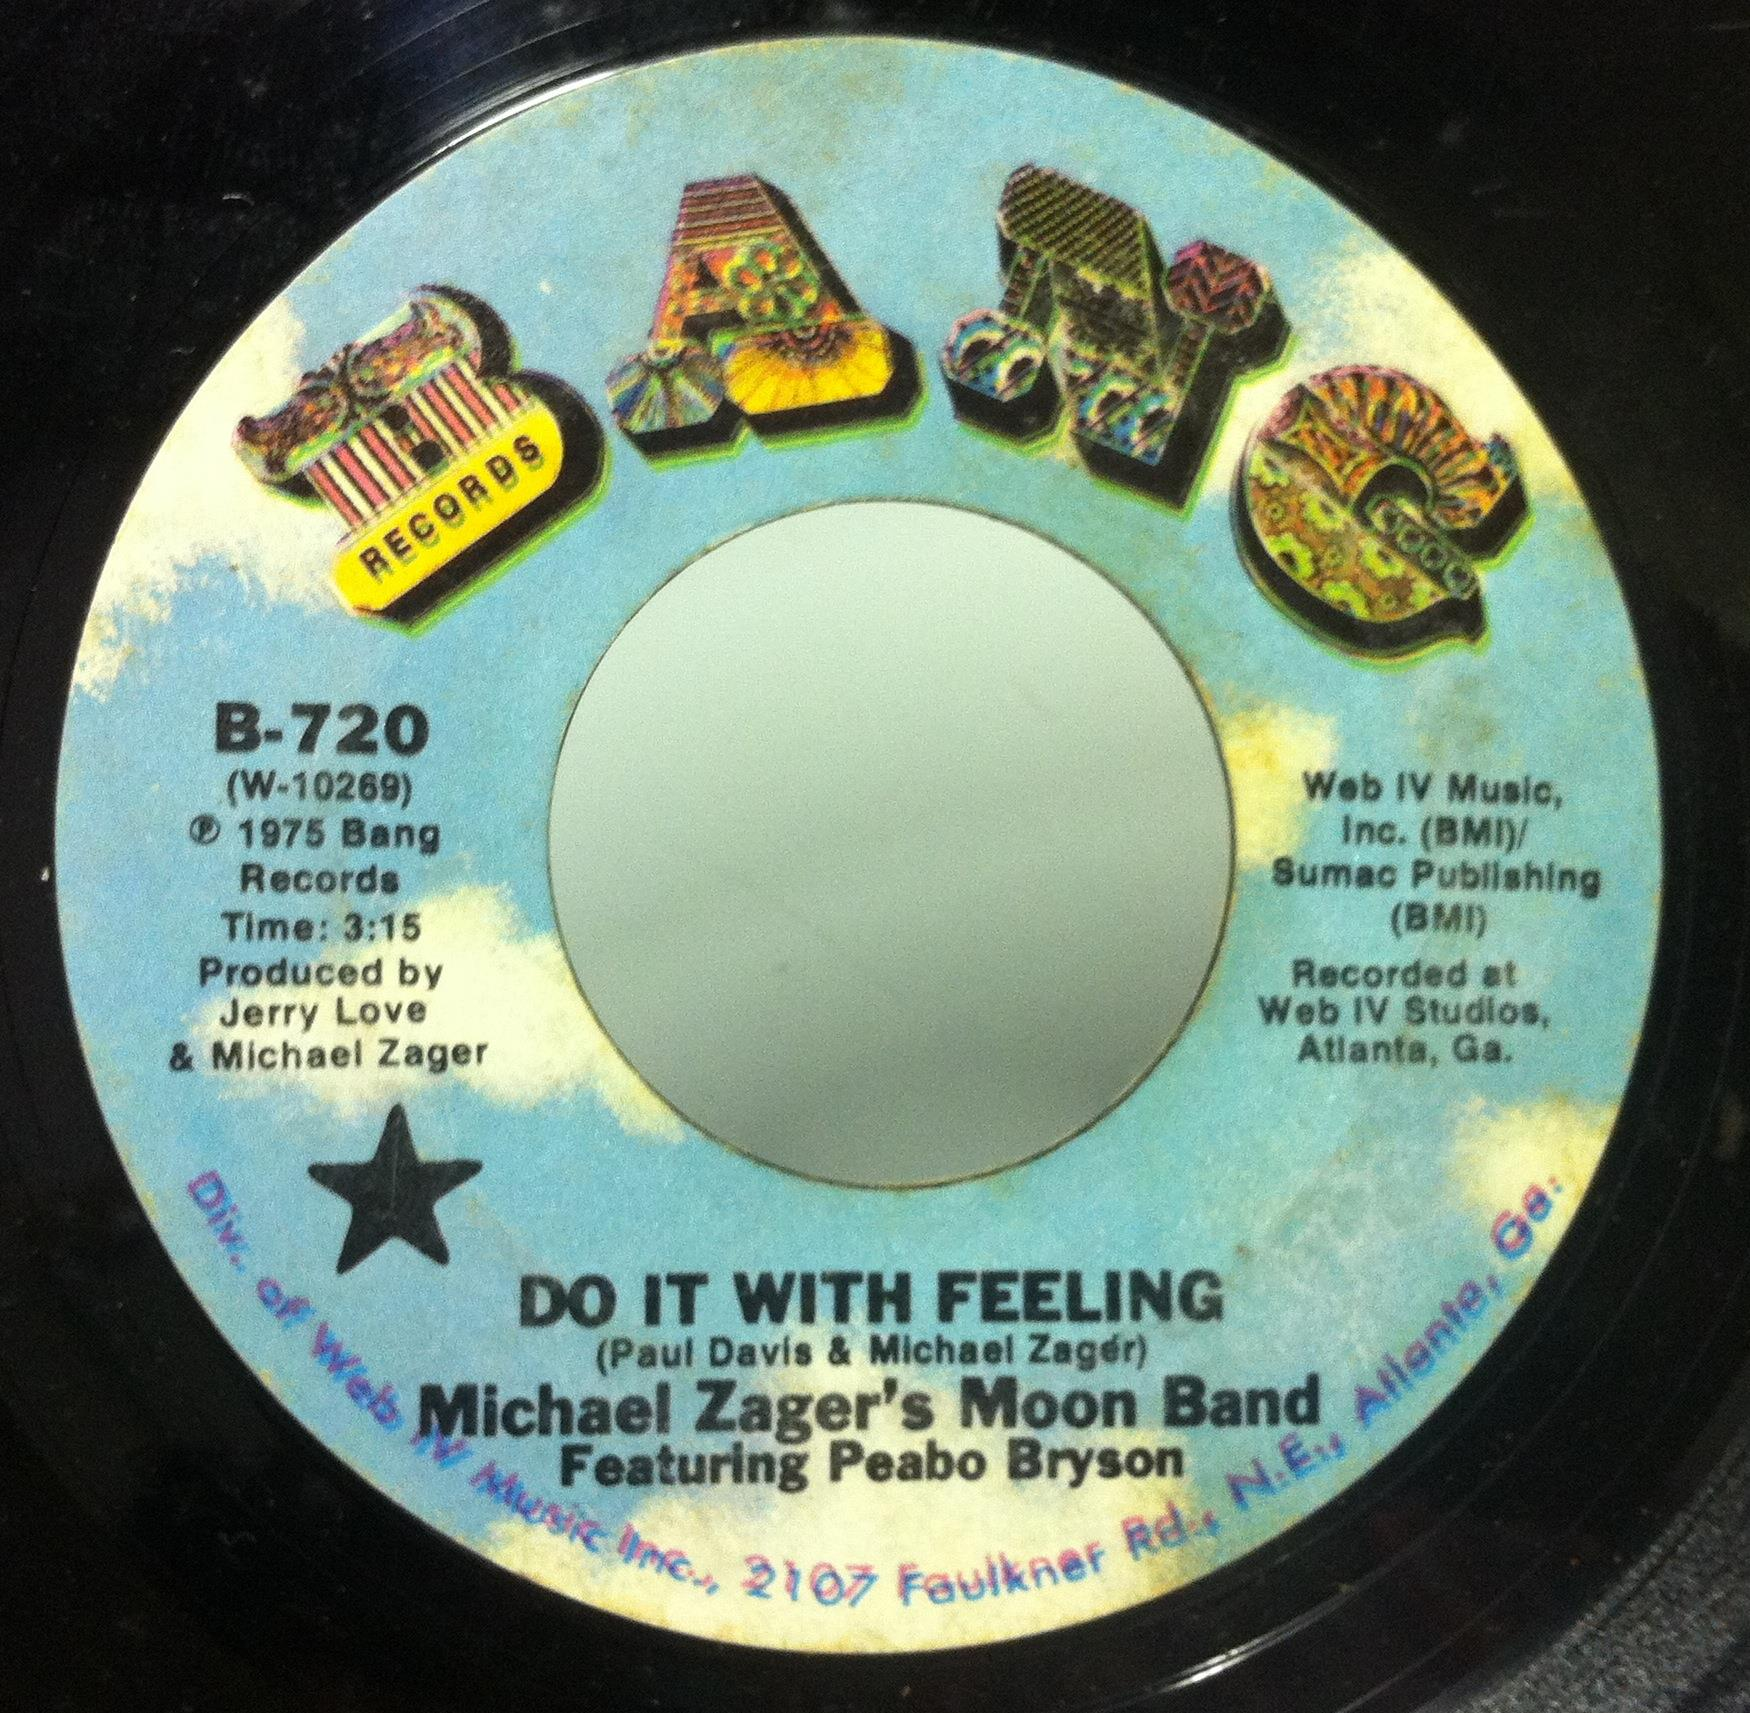 Michael Zager & The Moon Band - Do It With Feeling / This Is The Life